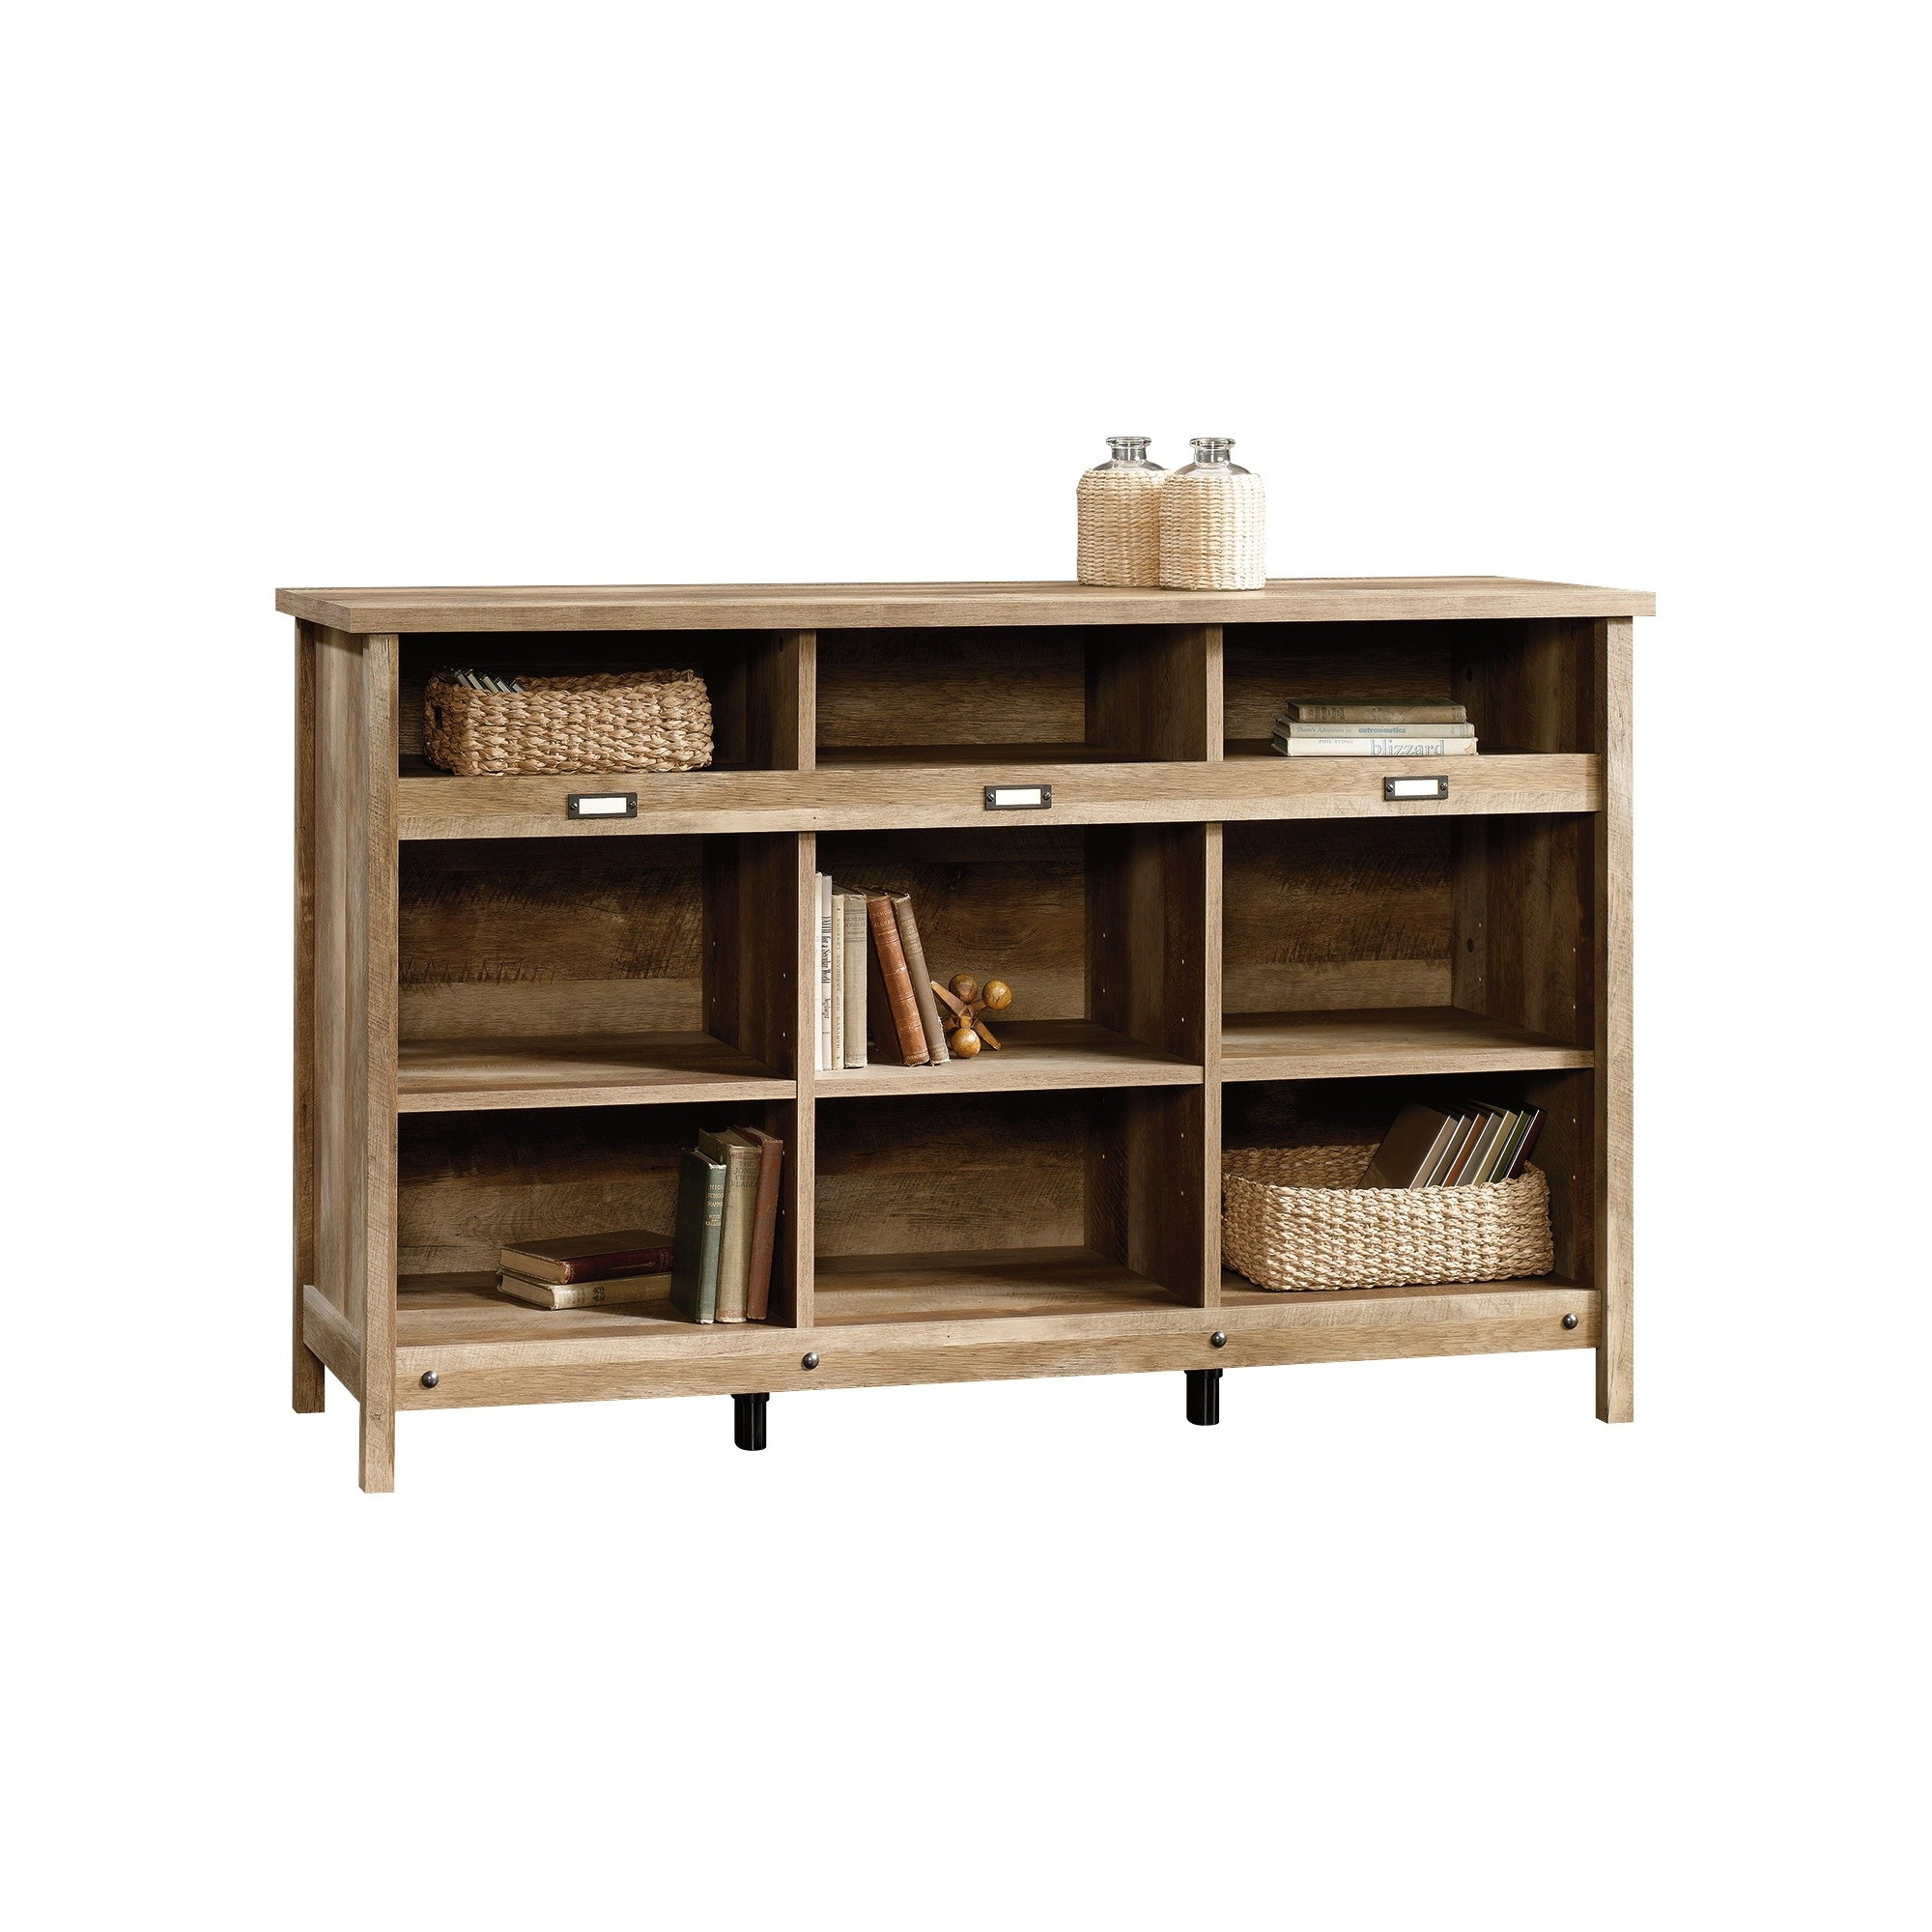 Sauder Adept Storage Credenza - Craftsman Oak | Products inside Craftsman Sideboards (Image 22 of 30)